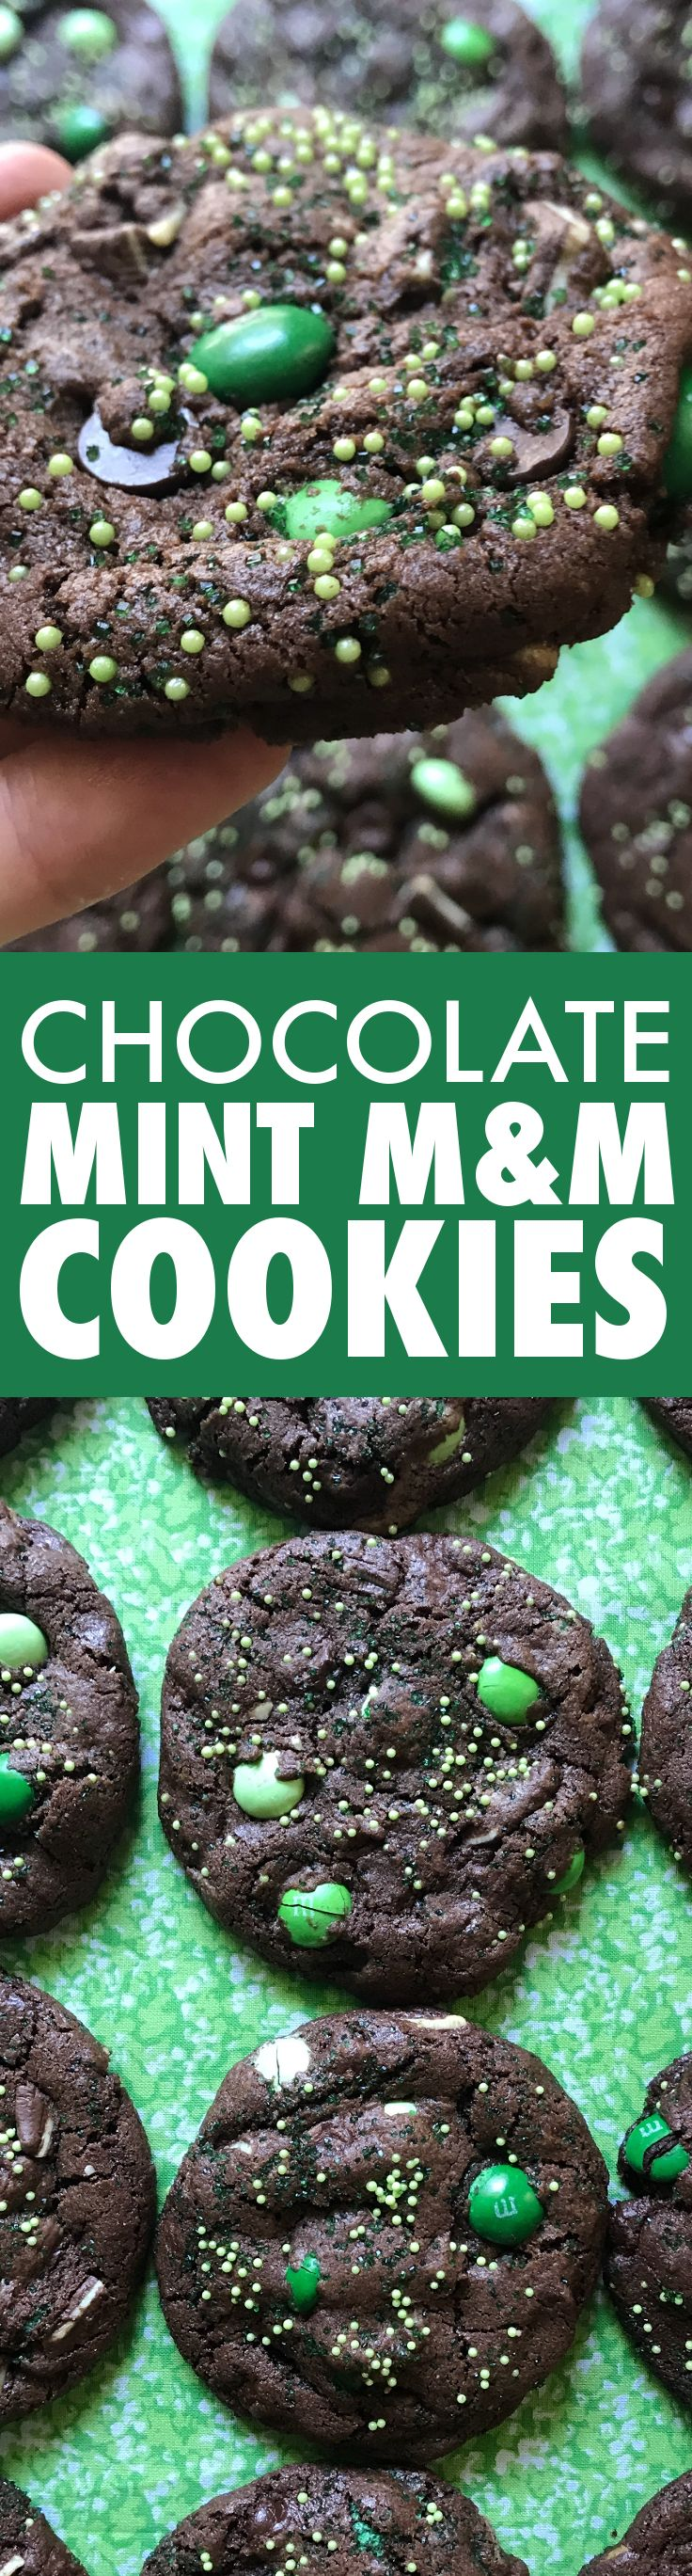 A delicious chocolate cookie base, filled with chocolate chips, mint M&Ms, and Andes Mints, and topped with a healthy dose of green sprinkles. Get the recipe at Baste Cut Fold.